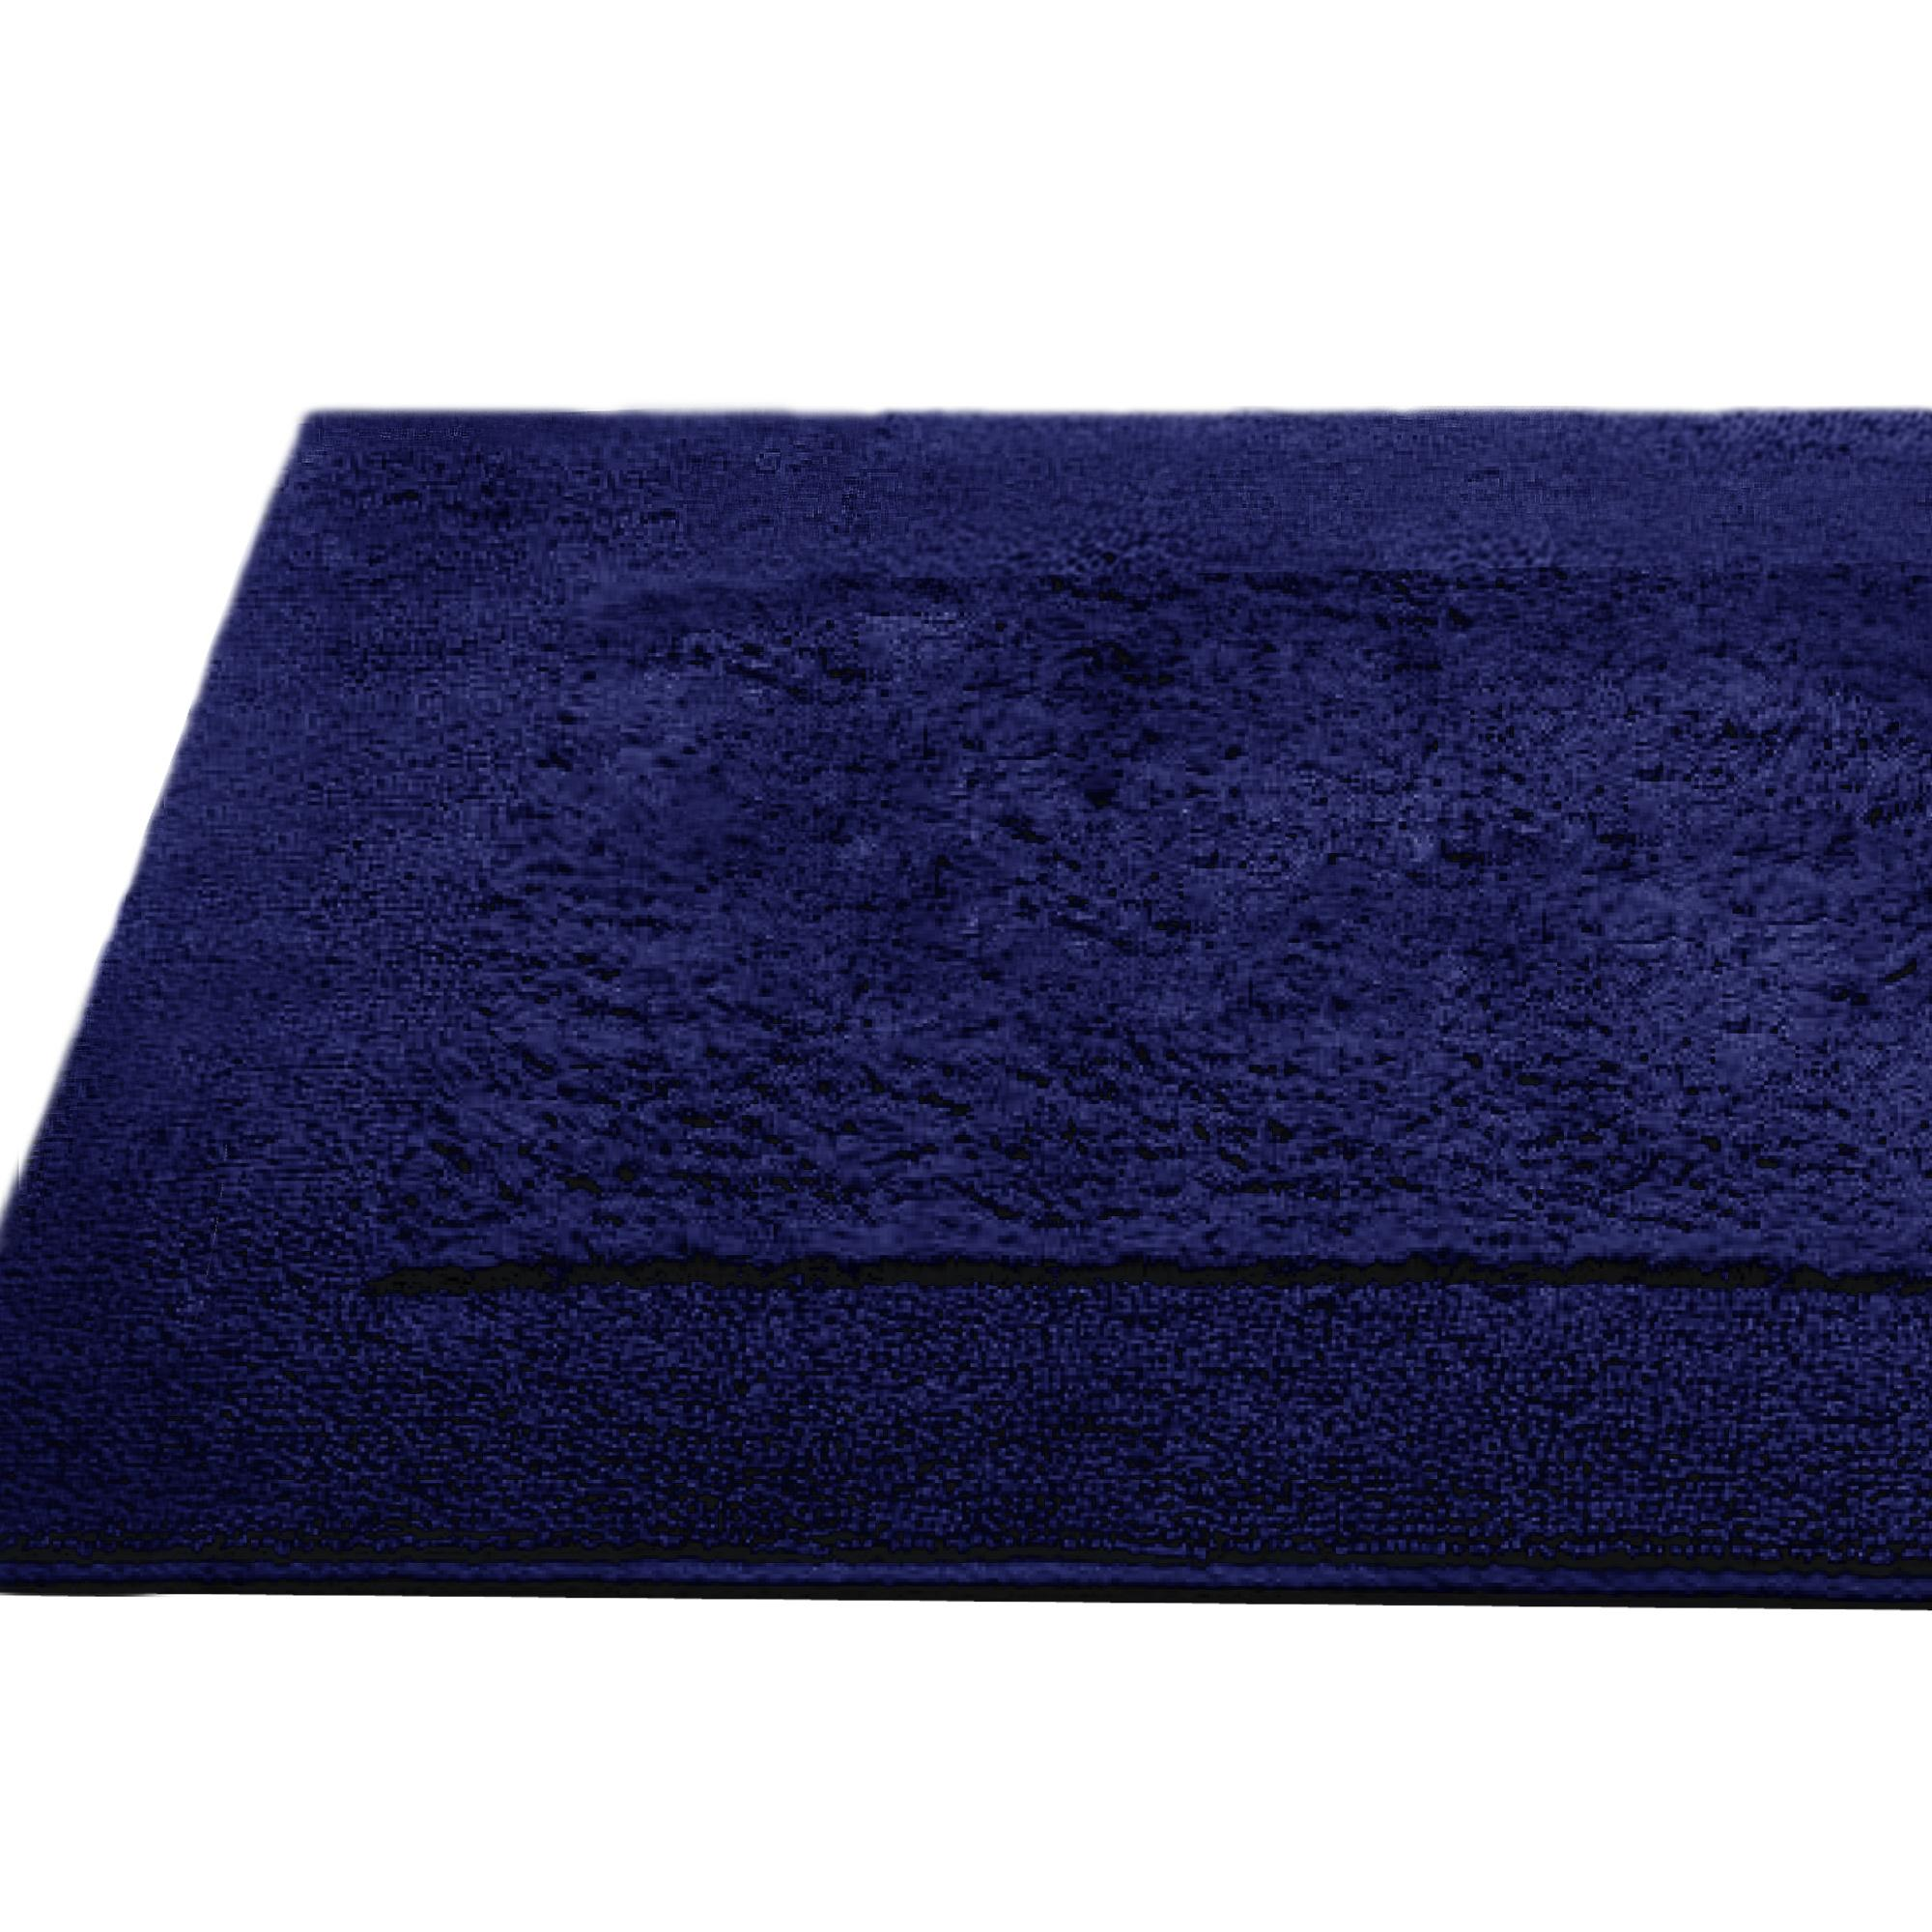 tapis de bain 60x60cm coton uni dream bleu marine linnea linge de maison et. Black Bedroom Furniture Sets. Home Design Ideas